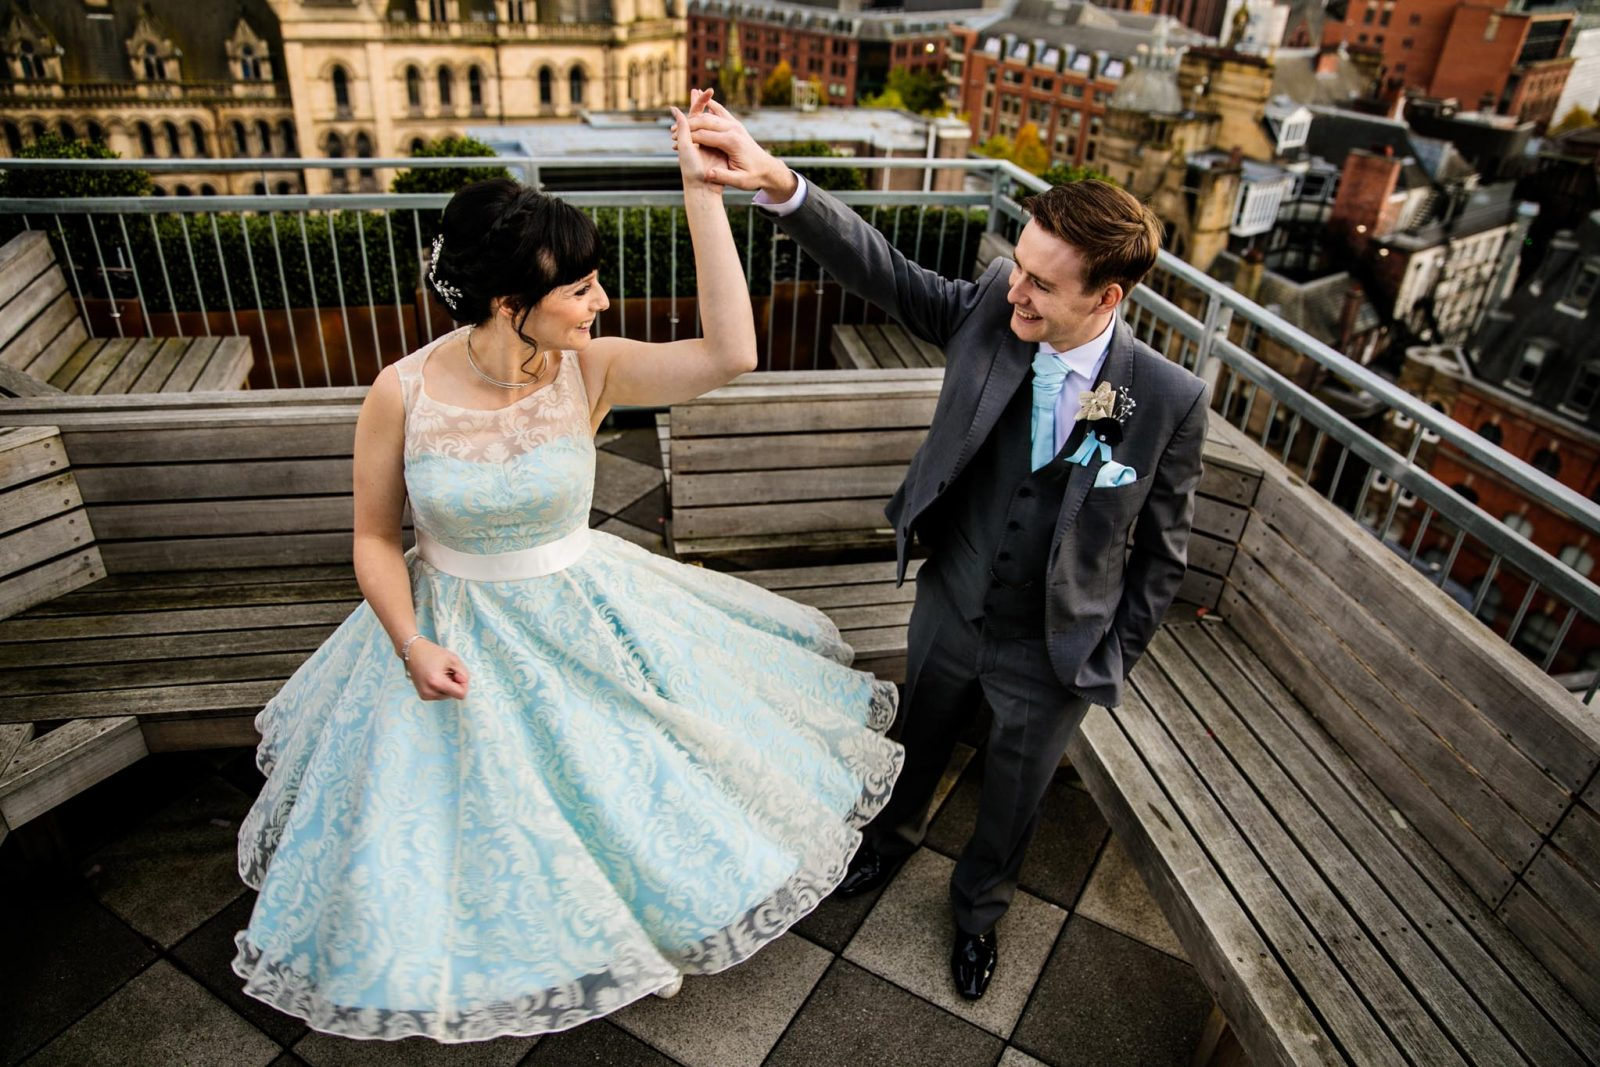 Manchester Chetham's Library wedding with a Harry Potter Theme